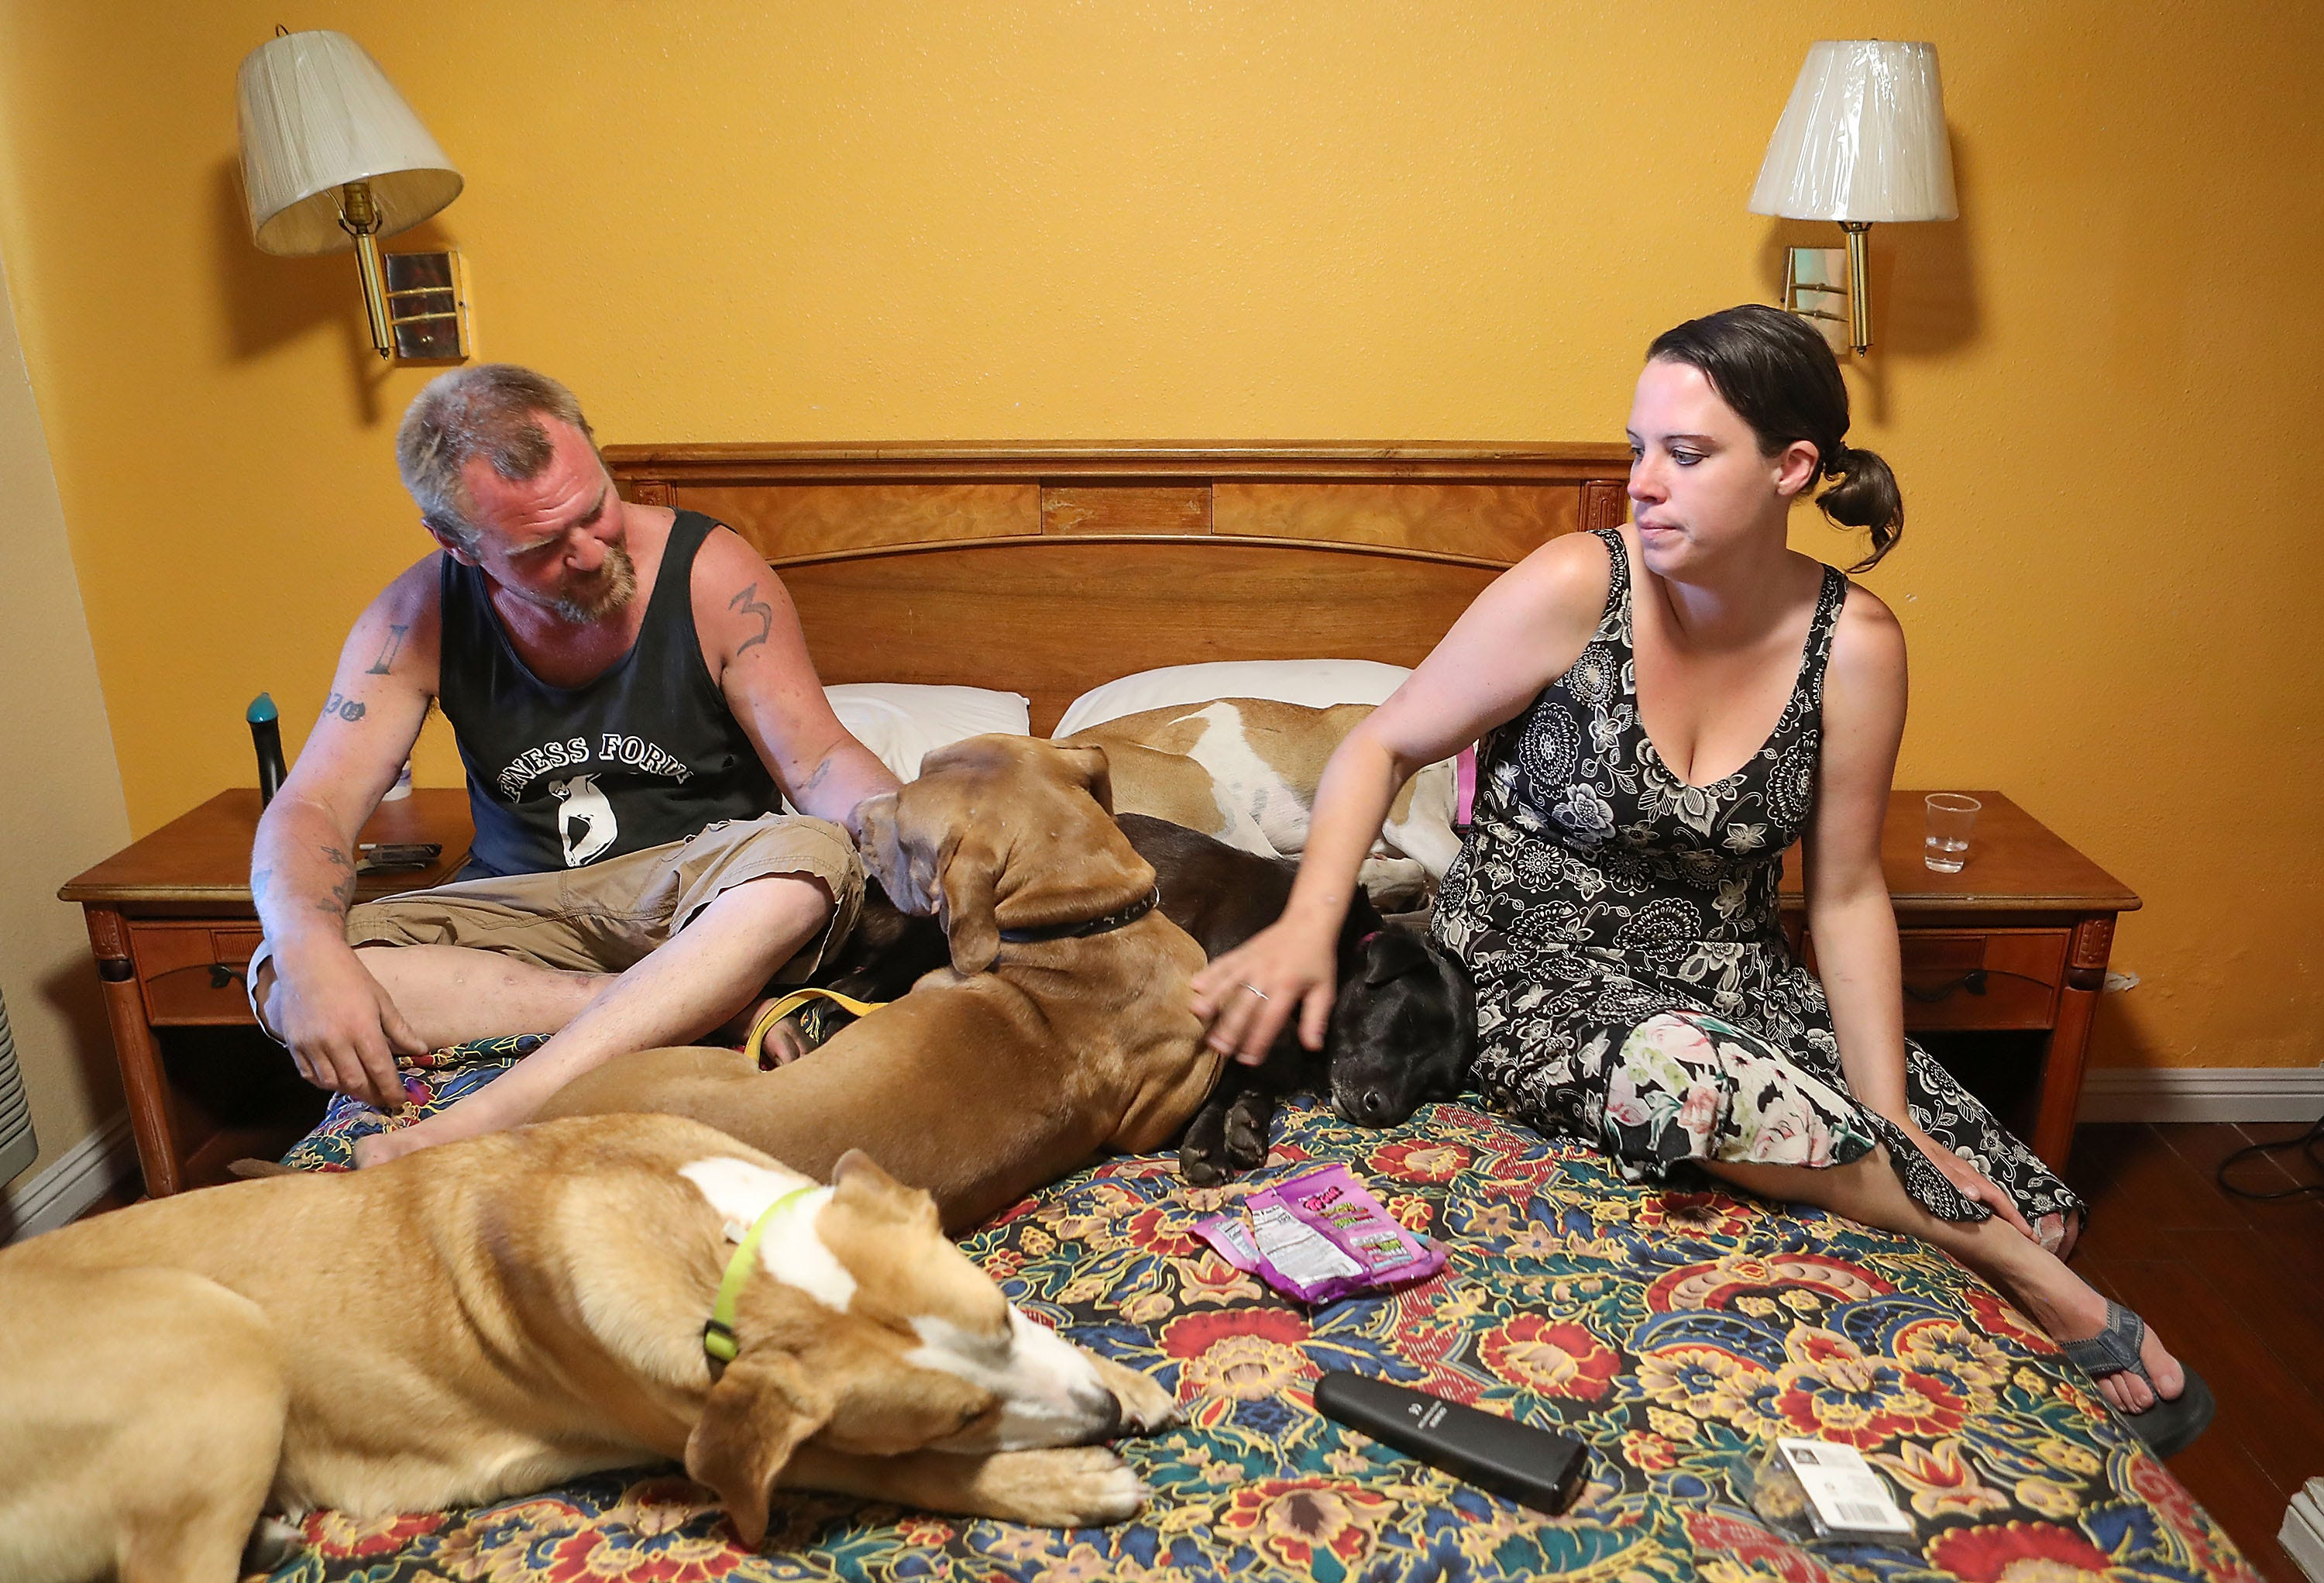 Bryan Hensley and Carene Riale were housed for 30 days in a motel in Indio with their four dogs. The two were displaced from the Coachella encampment in May 2018.